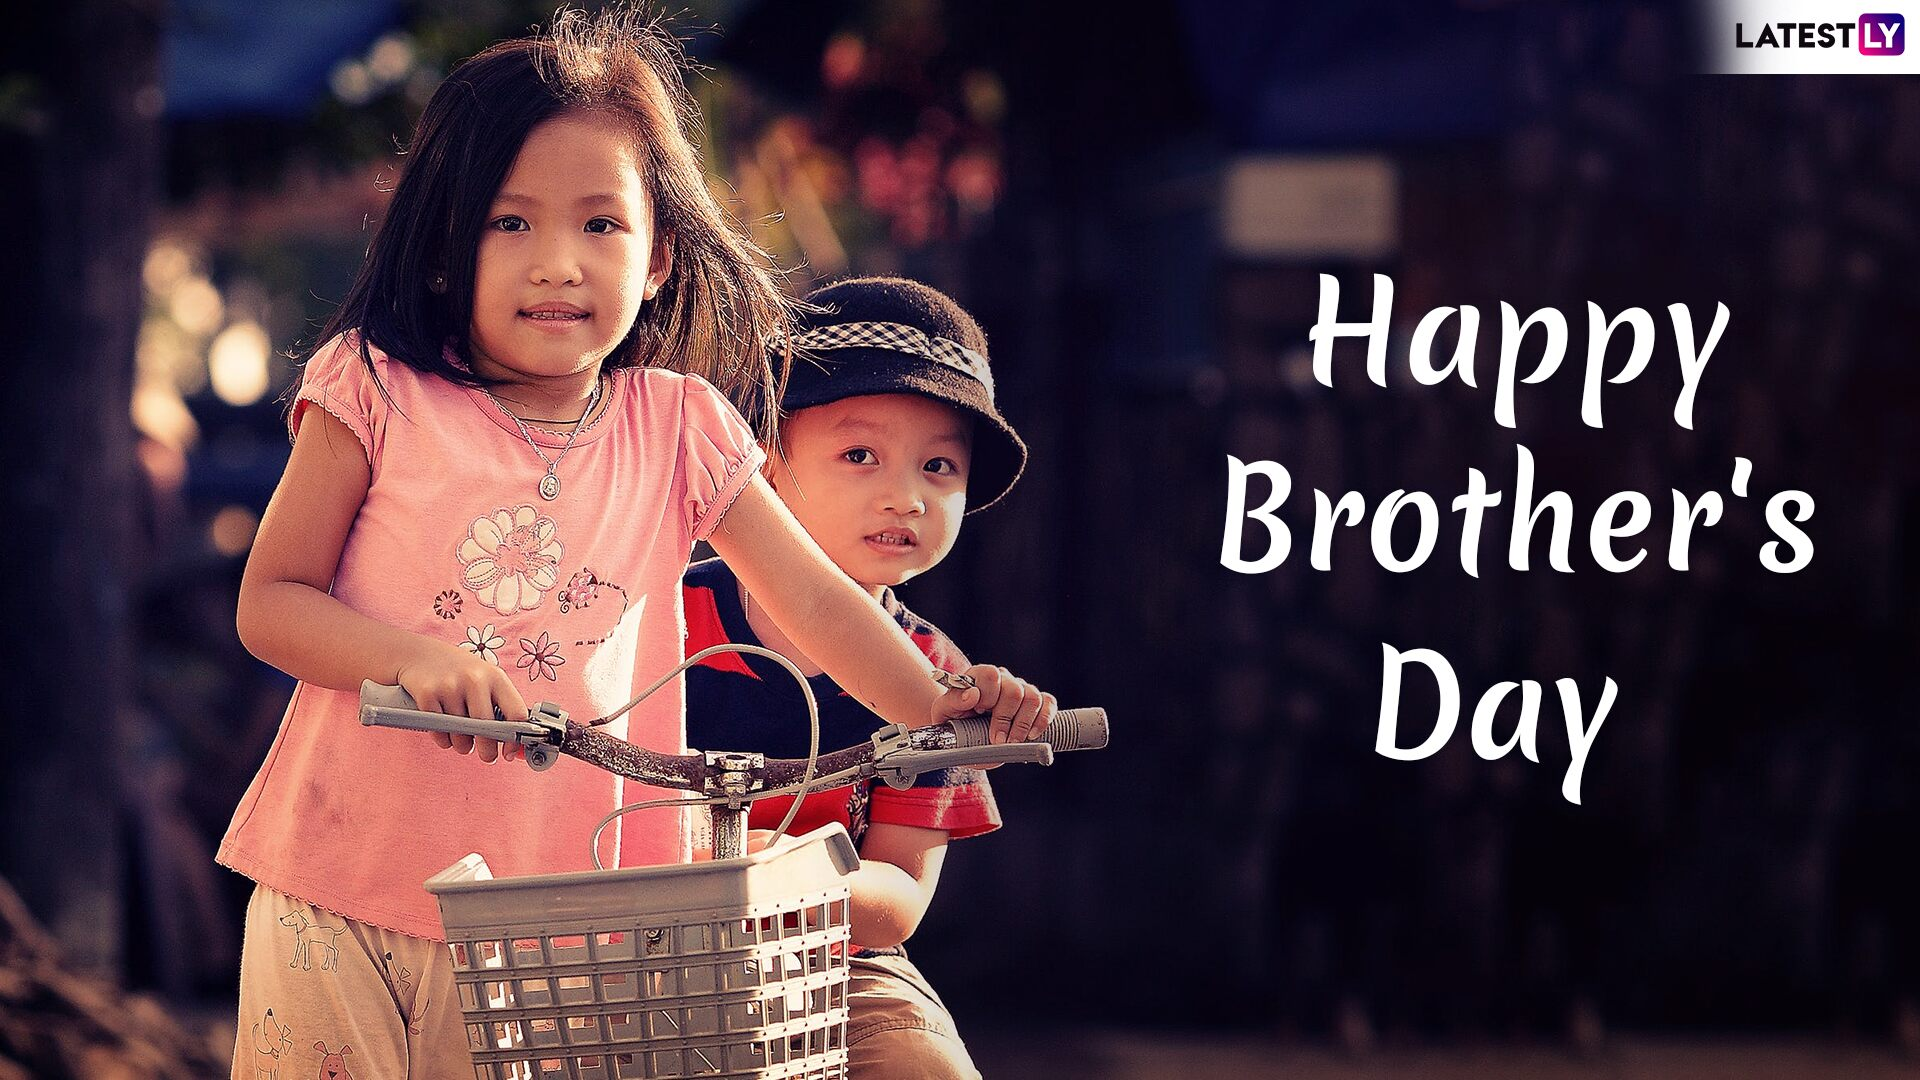 National Brothers Day Images HD Wallpapers for Download 1920x1080